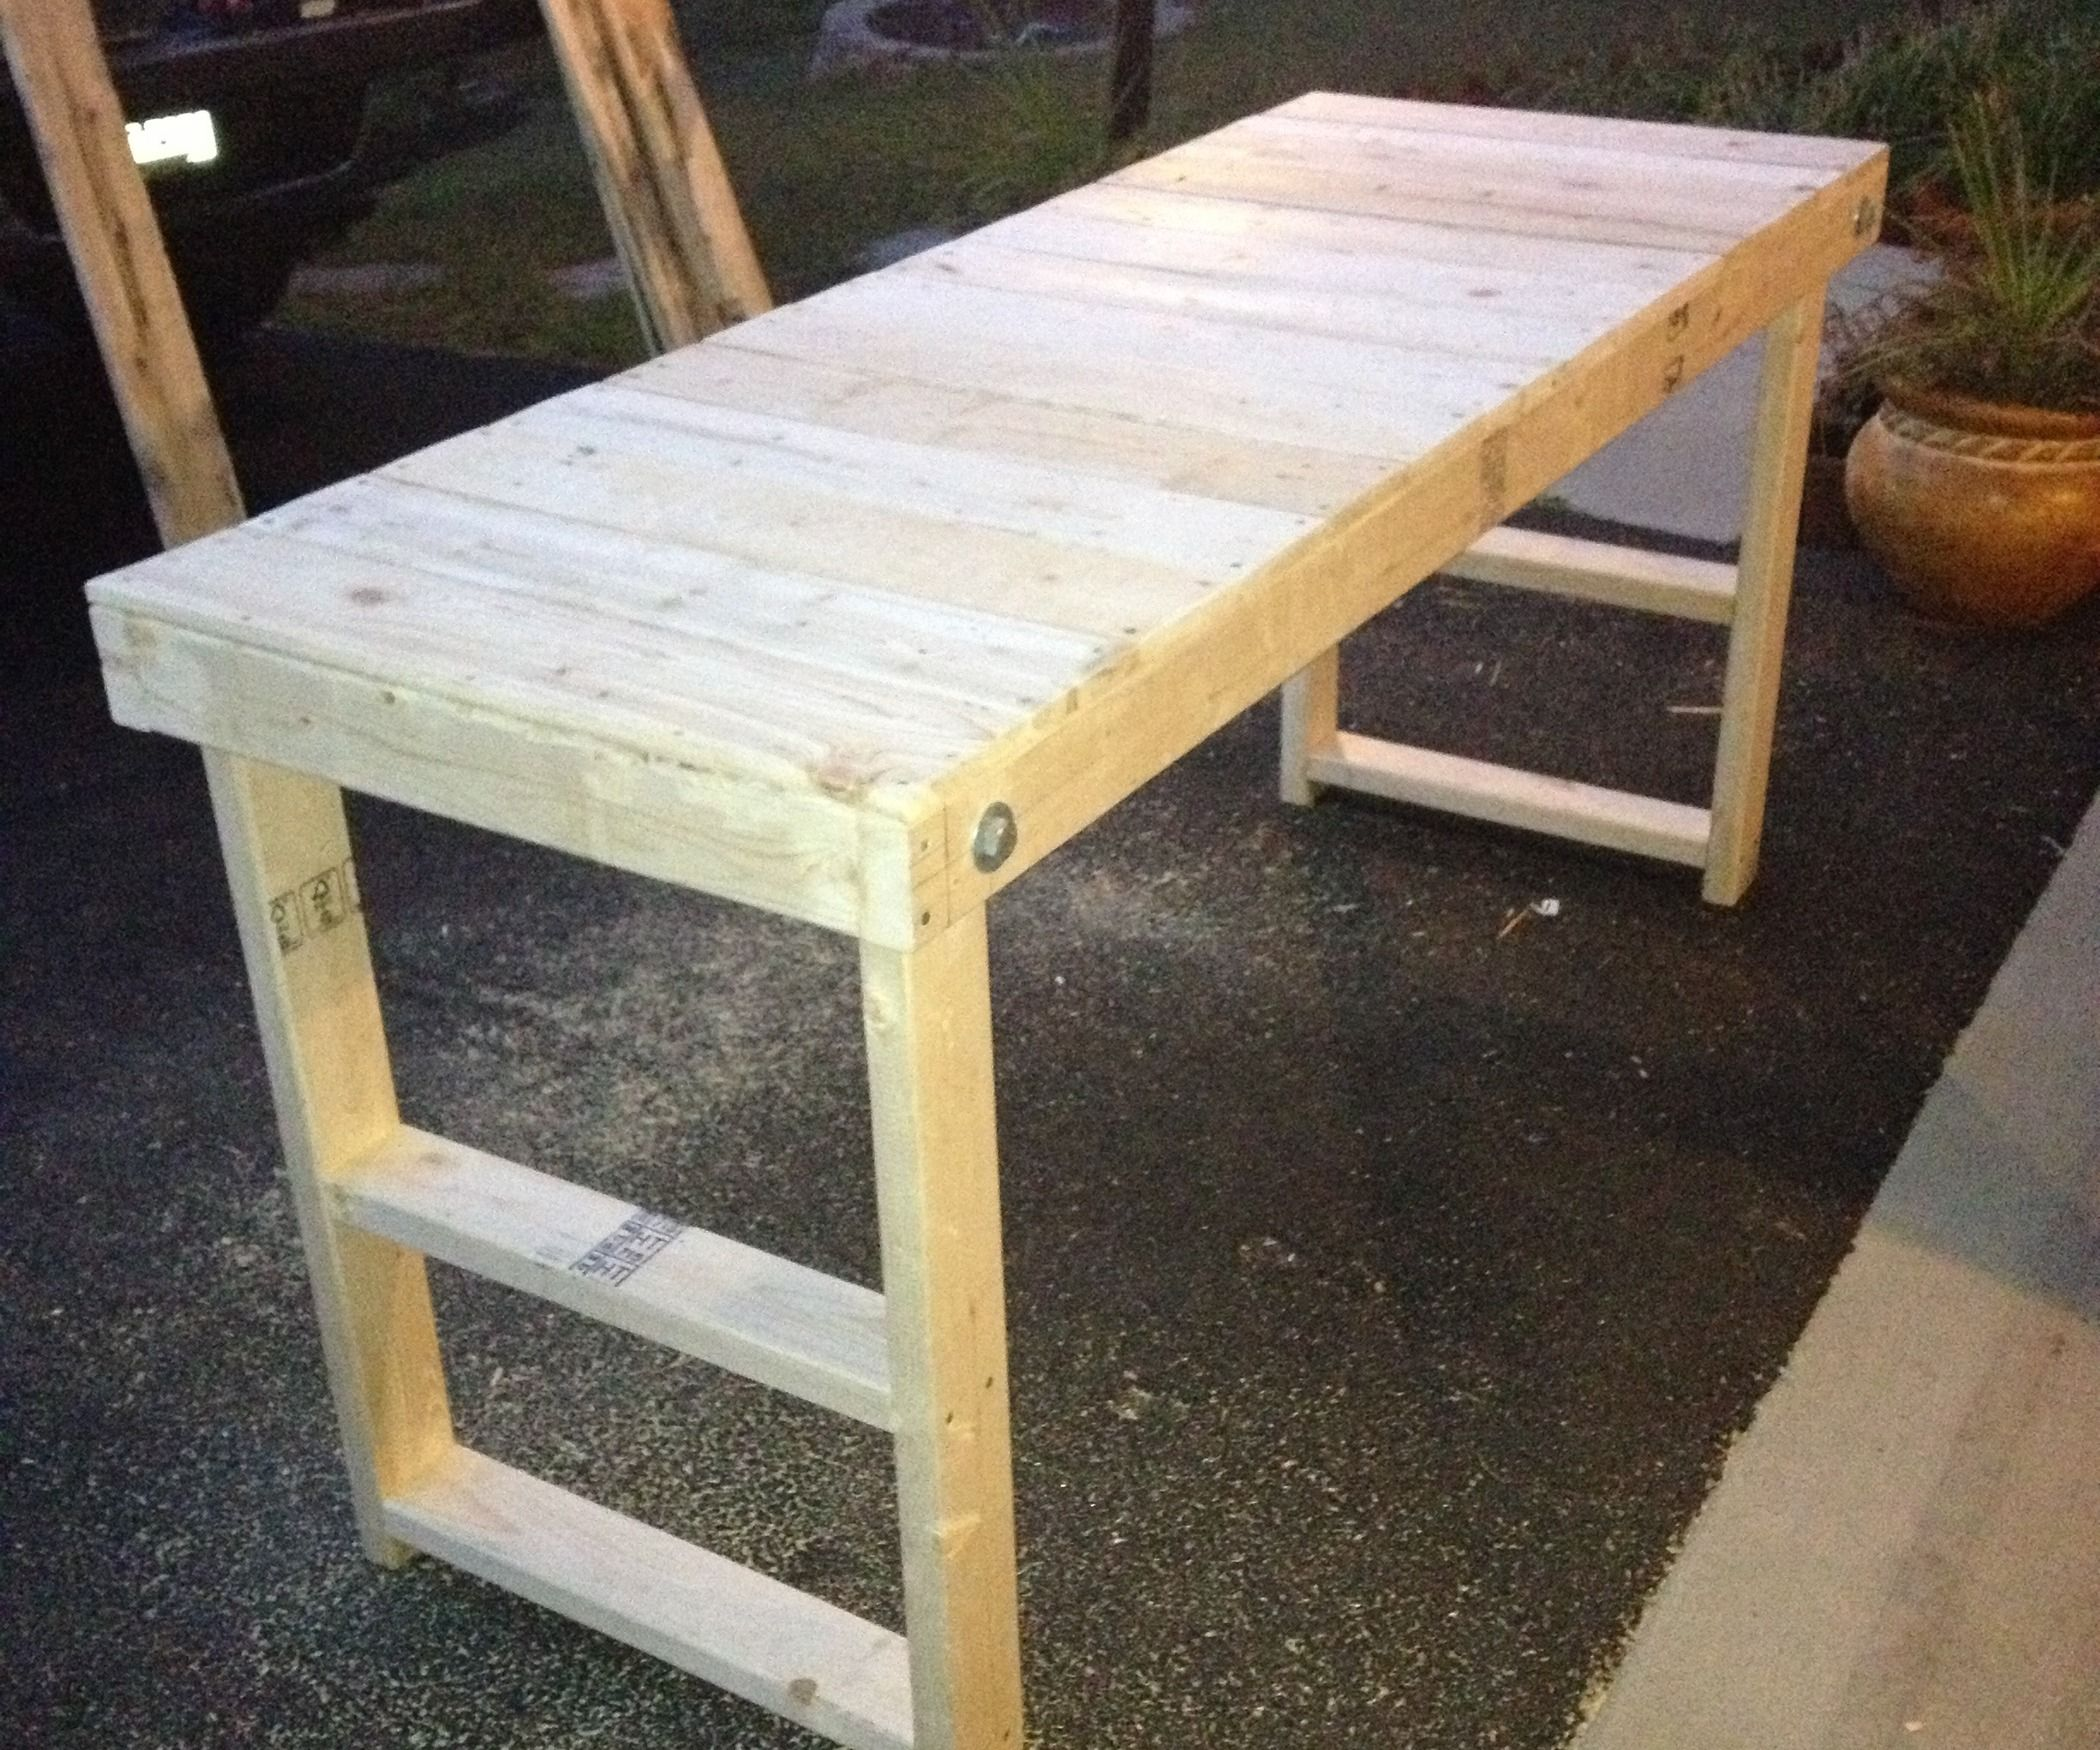 First Post I Was Shopping Around Home Depot When I Came Across A Workbench They Sell It Had A Folding Design Folding Workbench Woodworking Workbench Wood Diy